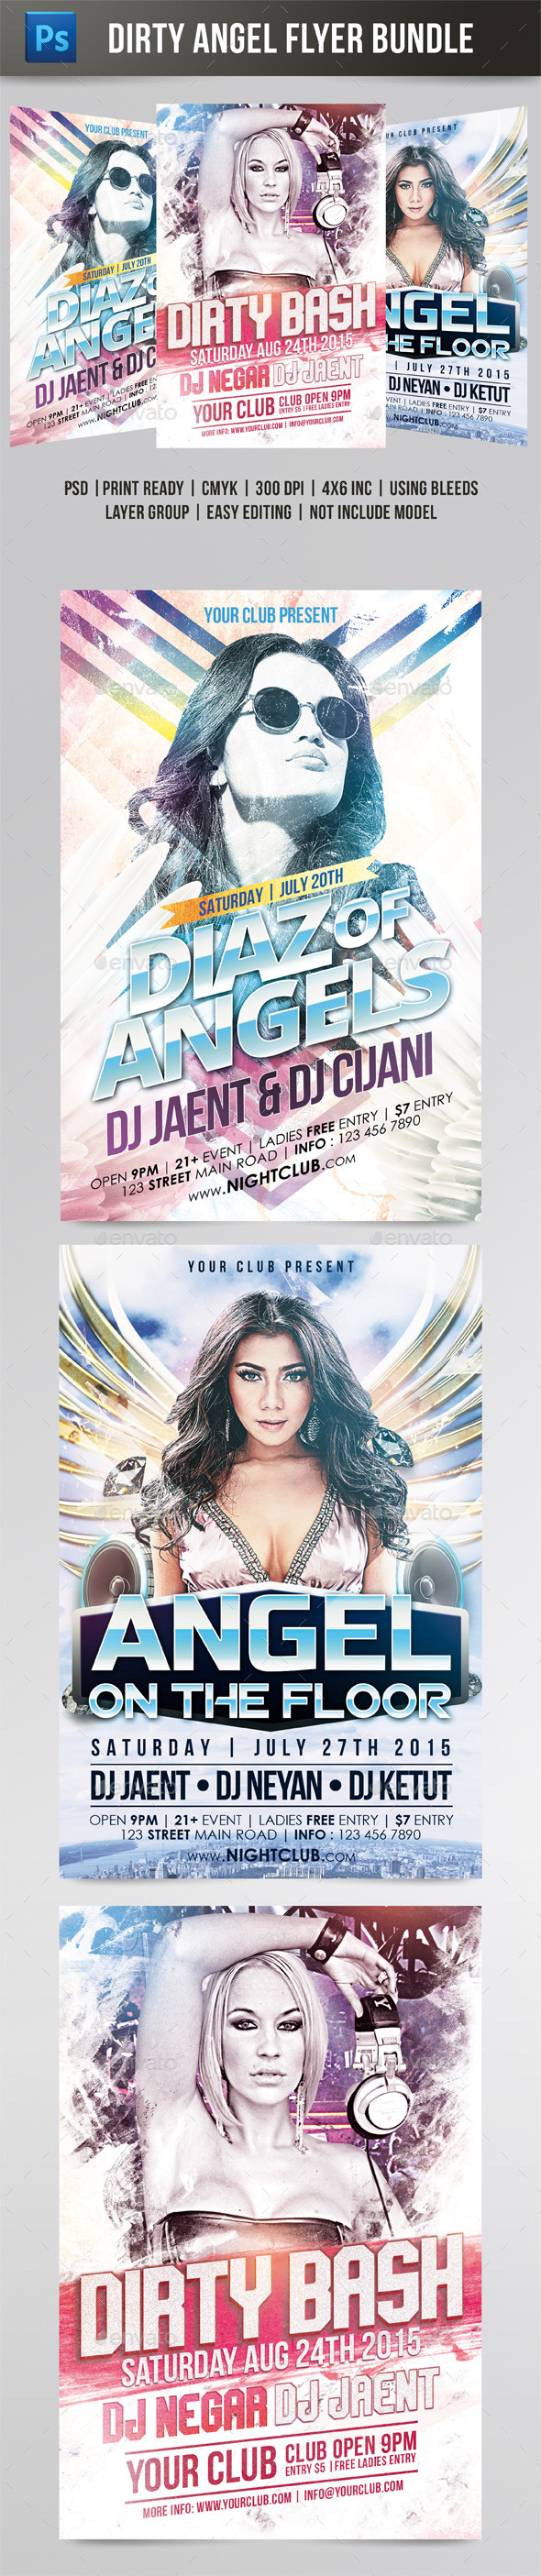 Dirty Angel Flyer Bundle - Clubs & Parties Events